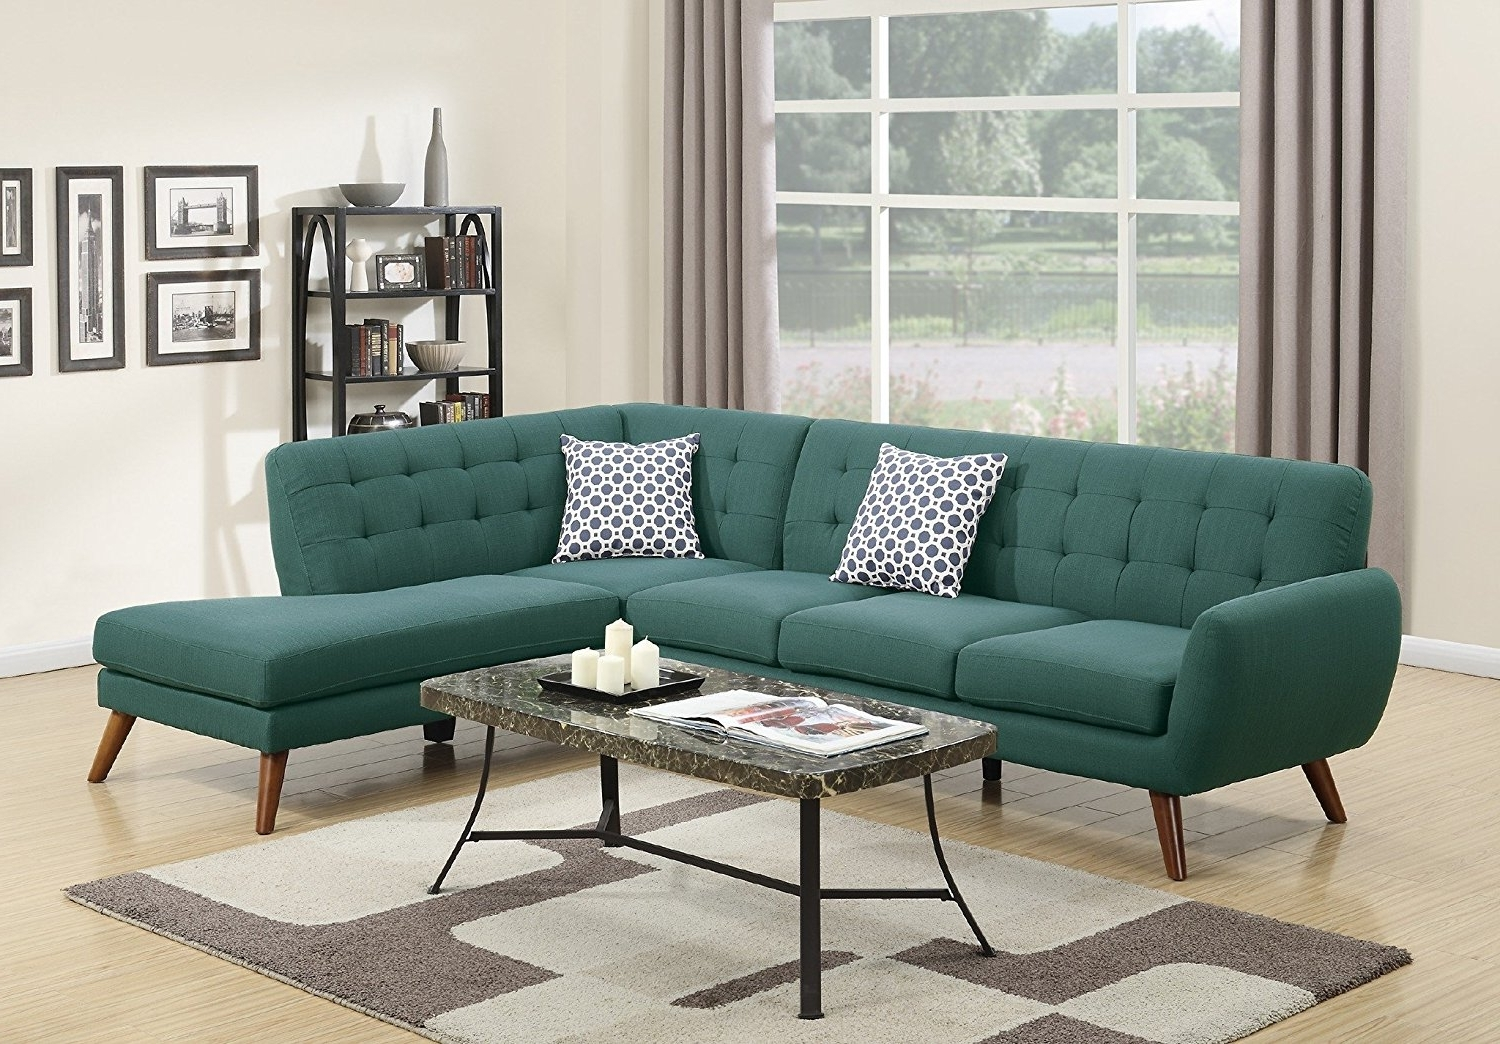 Cheap Retro Sofas Pertaining To Newest Amazon: Modern Retro Sectional Sofa (Laguna): Kitchen & Dining (View 4 of 15)